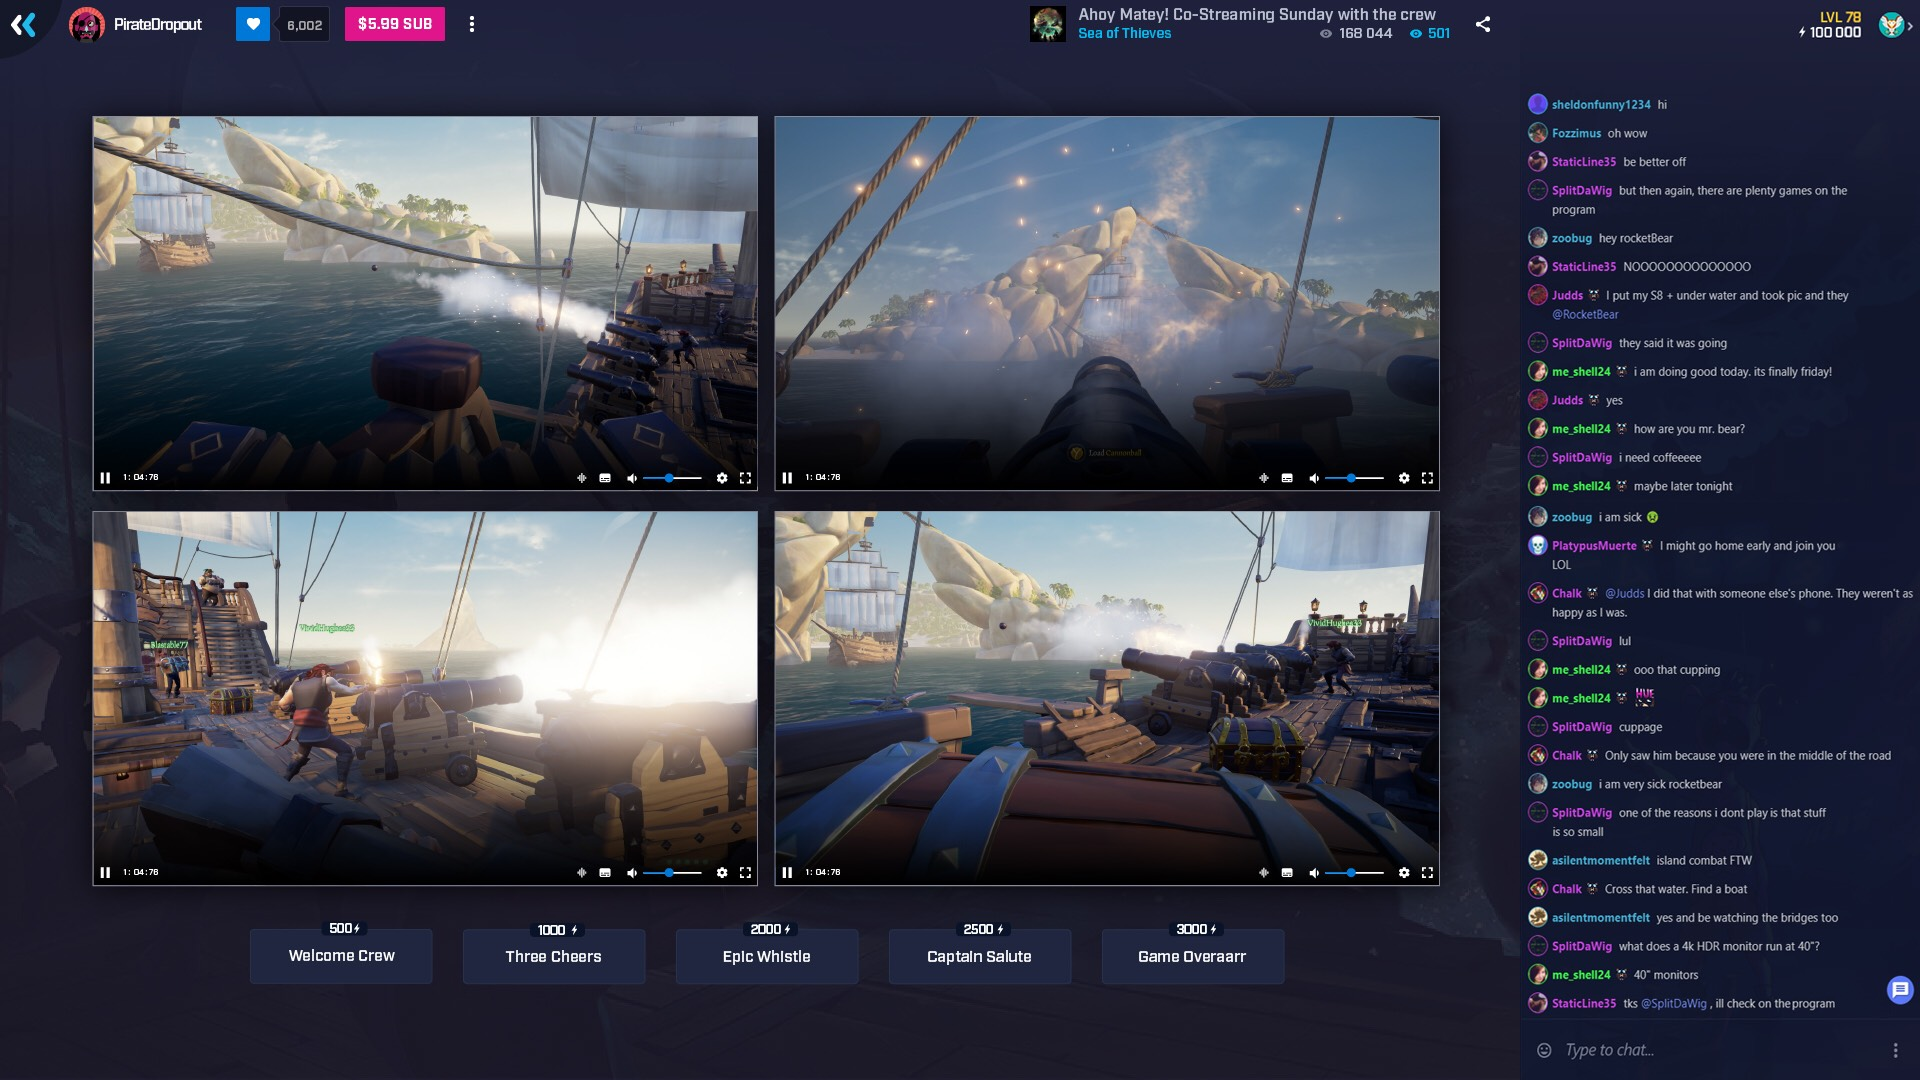 Microsoft Rebrands Beam Streaming Service As Mixer